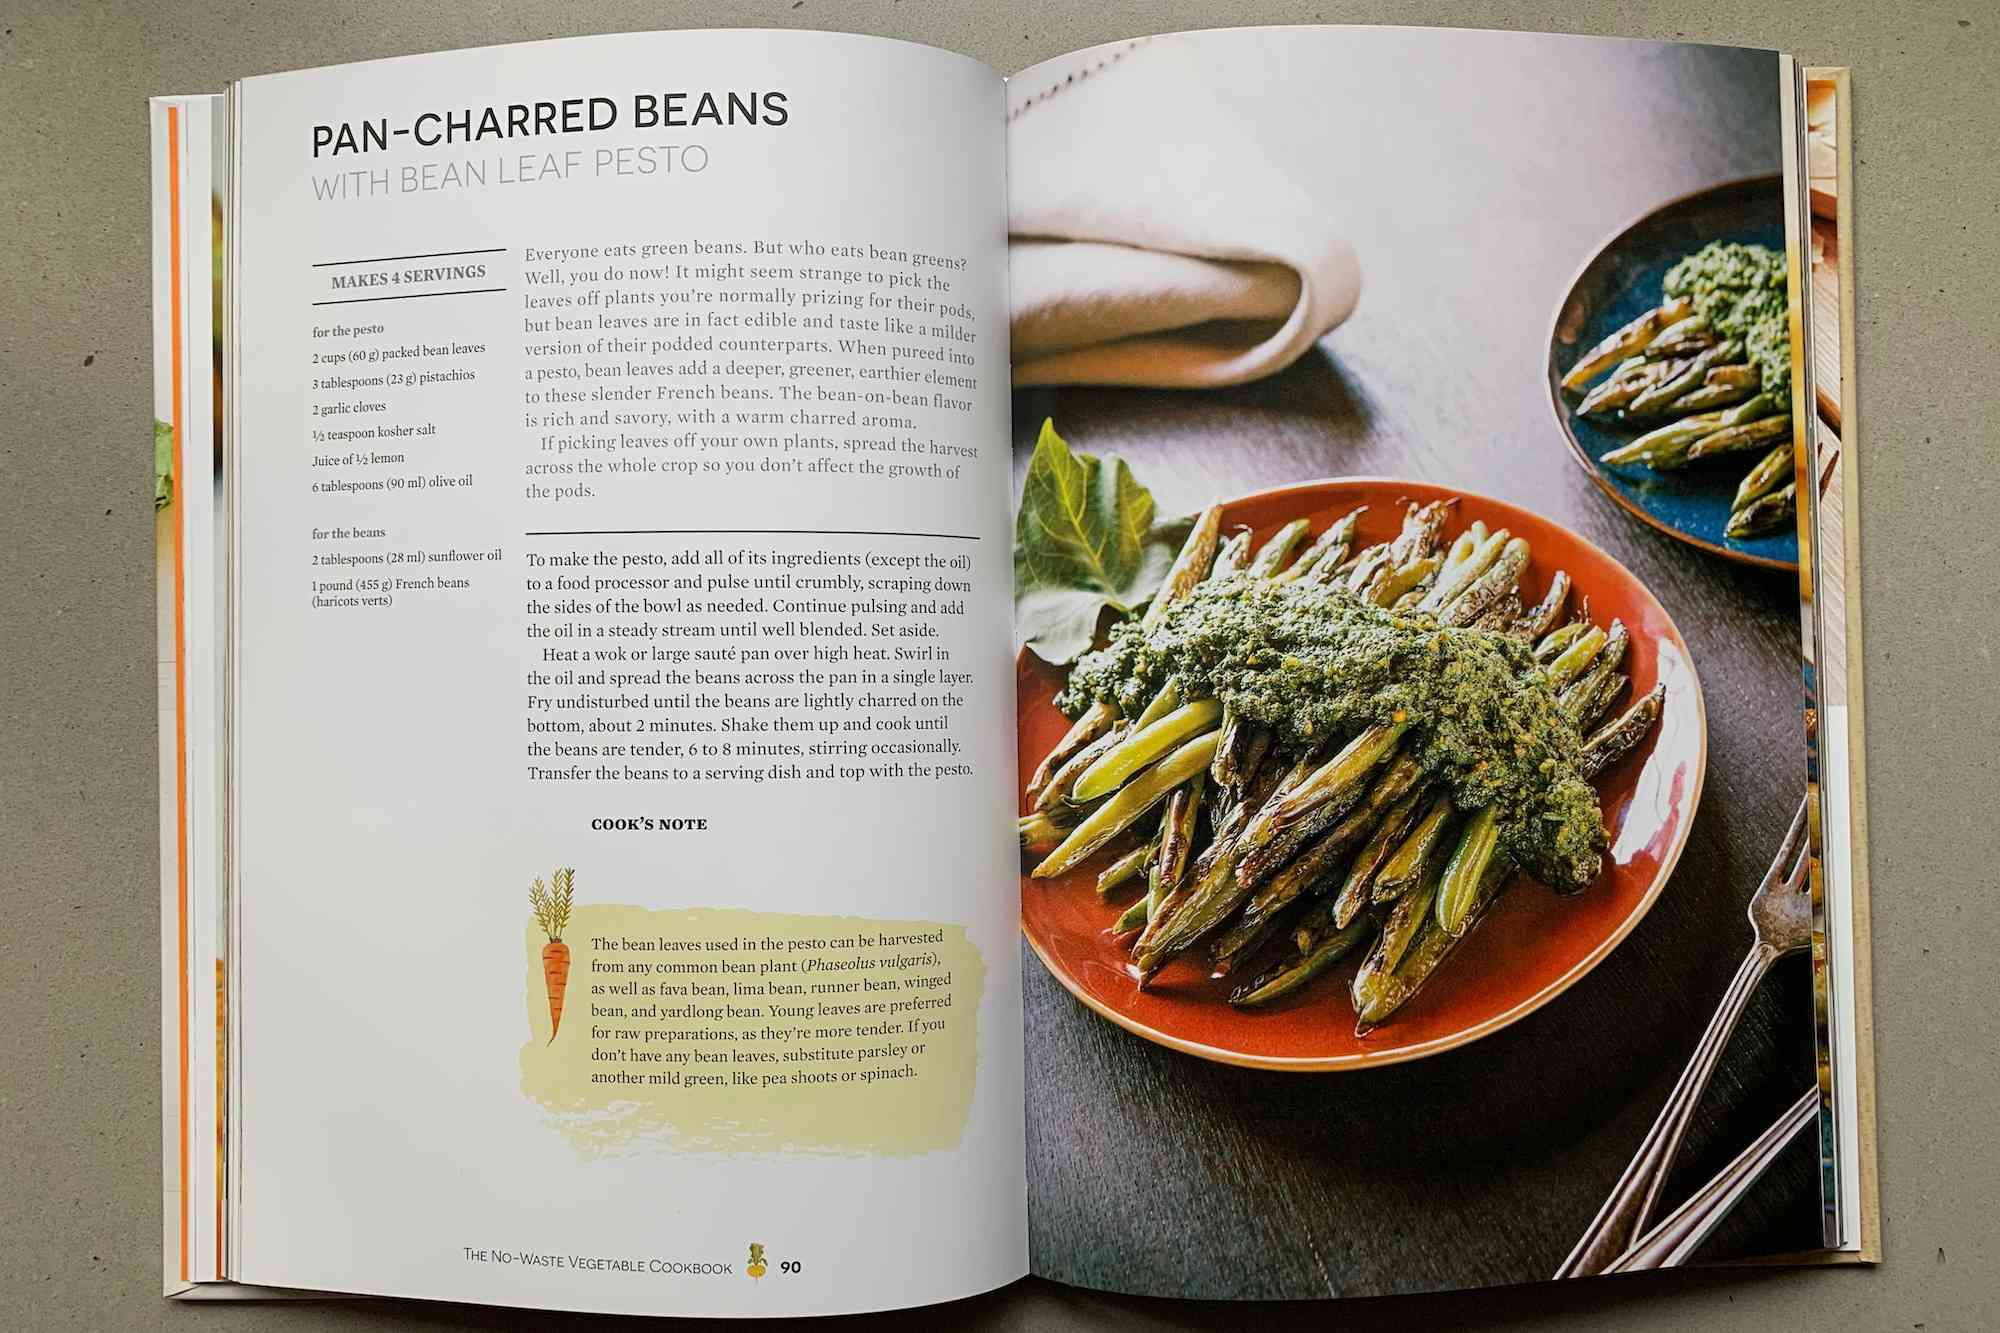 bean recipe from No-Waste Vegetable Cookbook